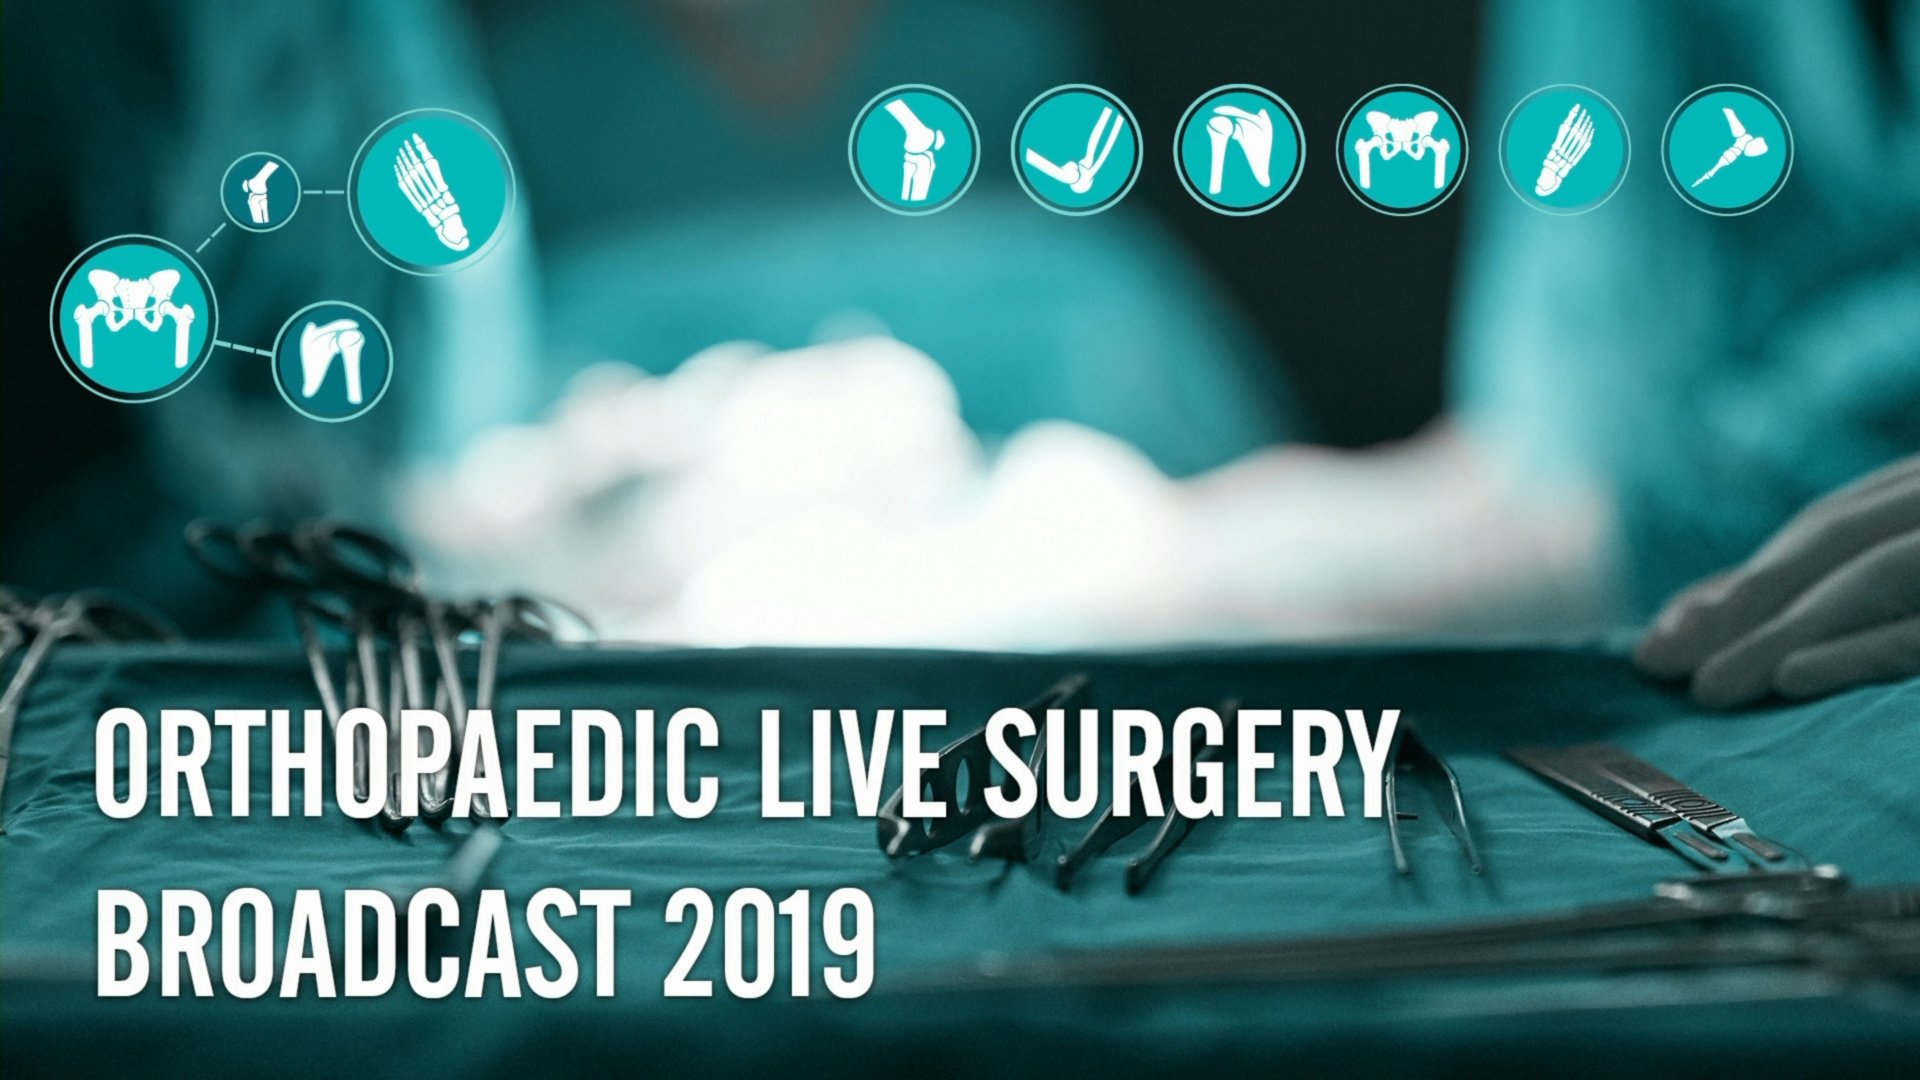 Orthopaedic Live Surgery Broadcast 2019